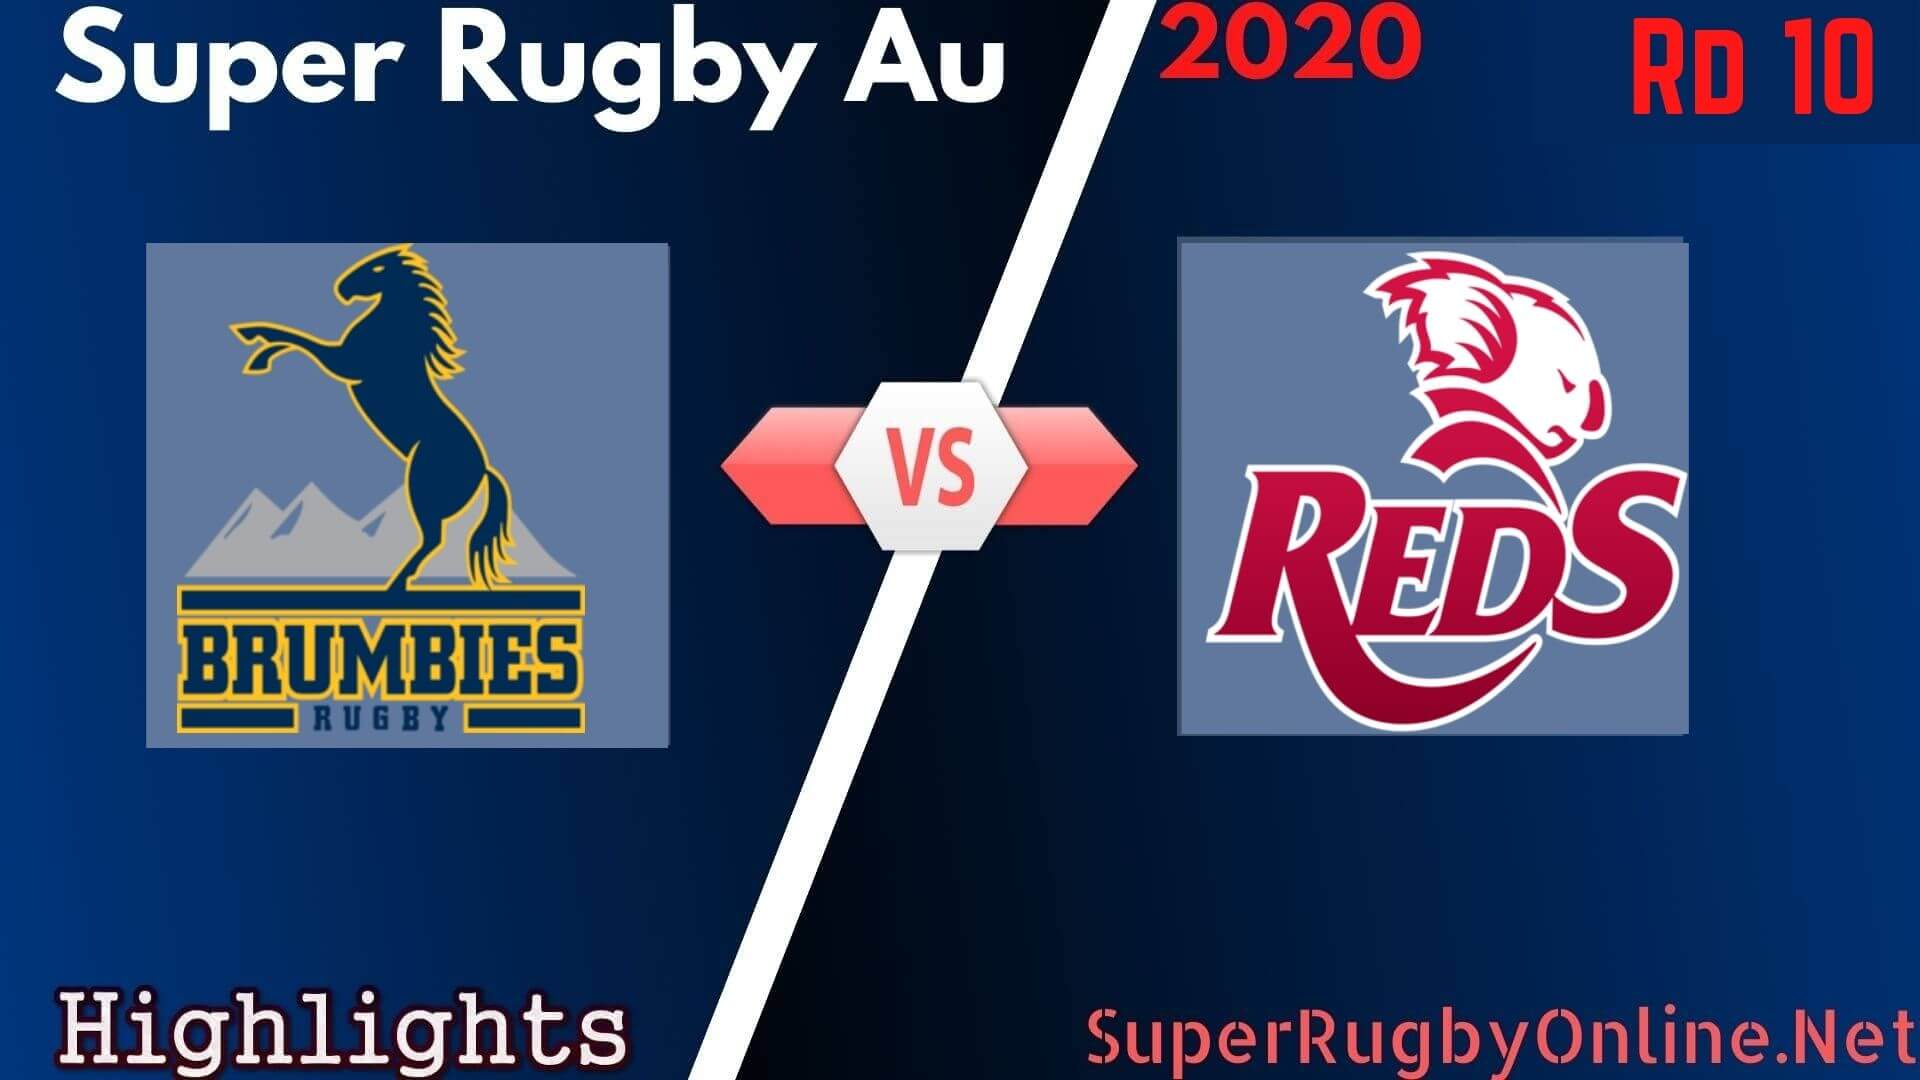 Brumbies Vs Reds Rd 10 Highlights 2020 Super Rugby Au